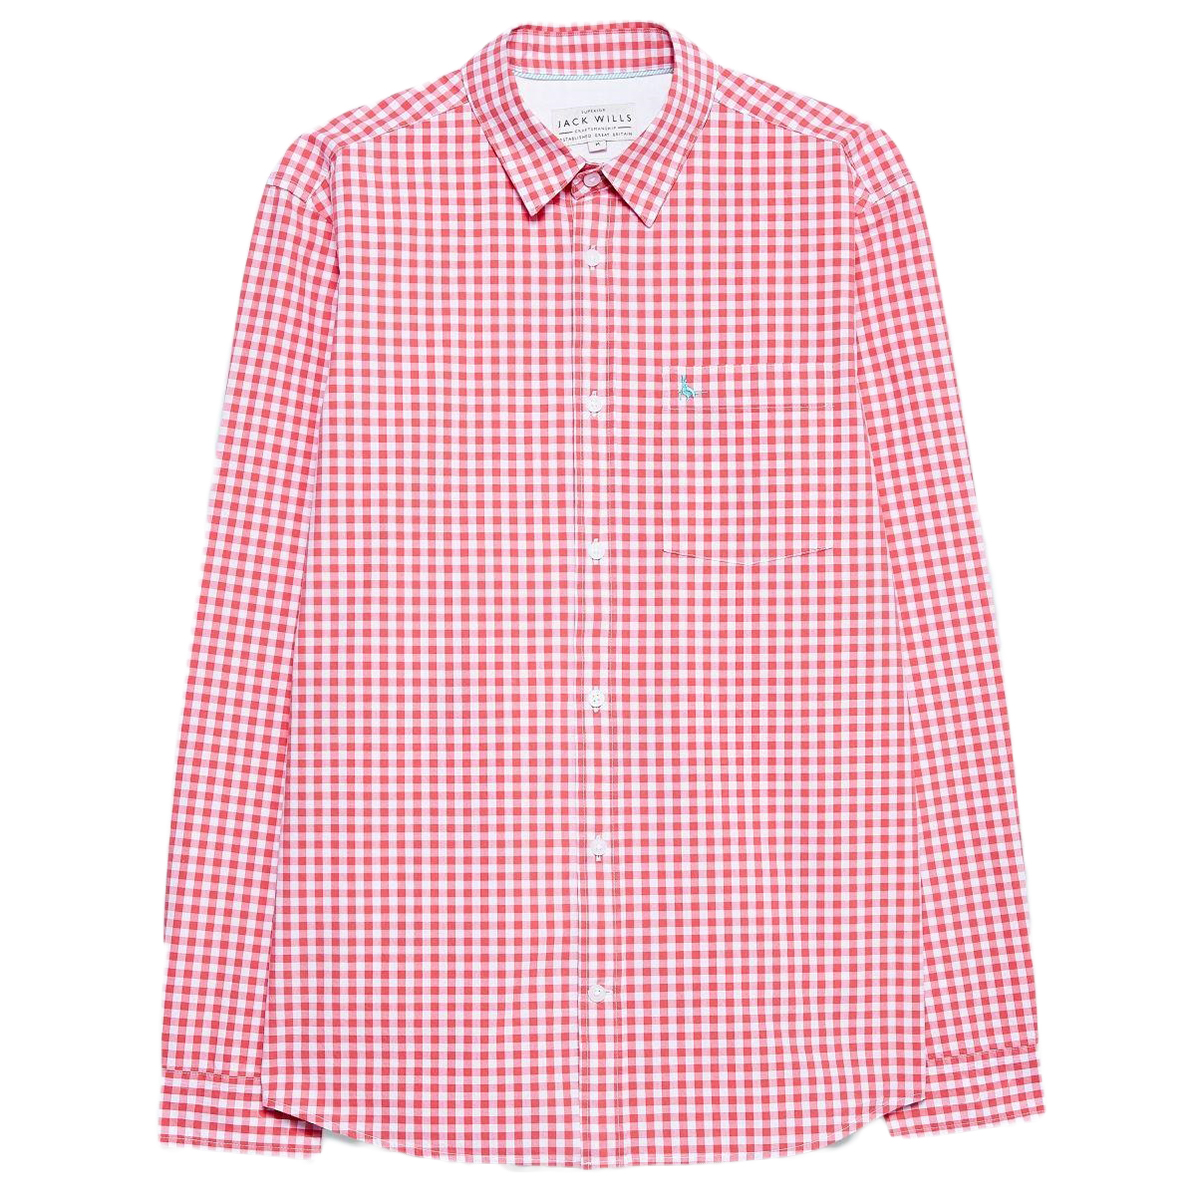 Jack Wills Men's Long-Sleeve Ruxton Poplin Gingham Shirt - Orange, XS